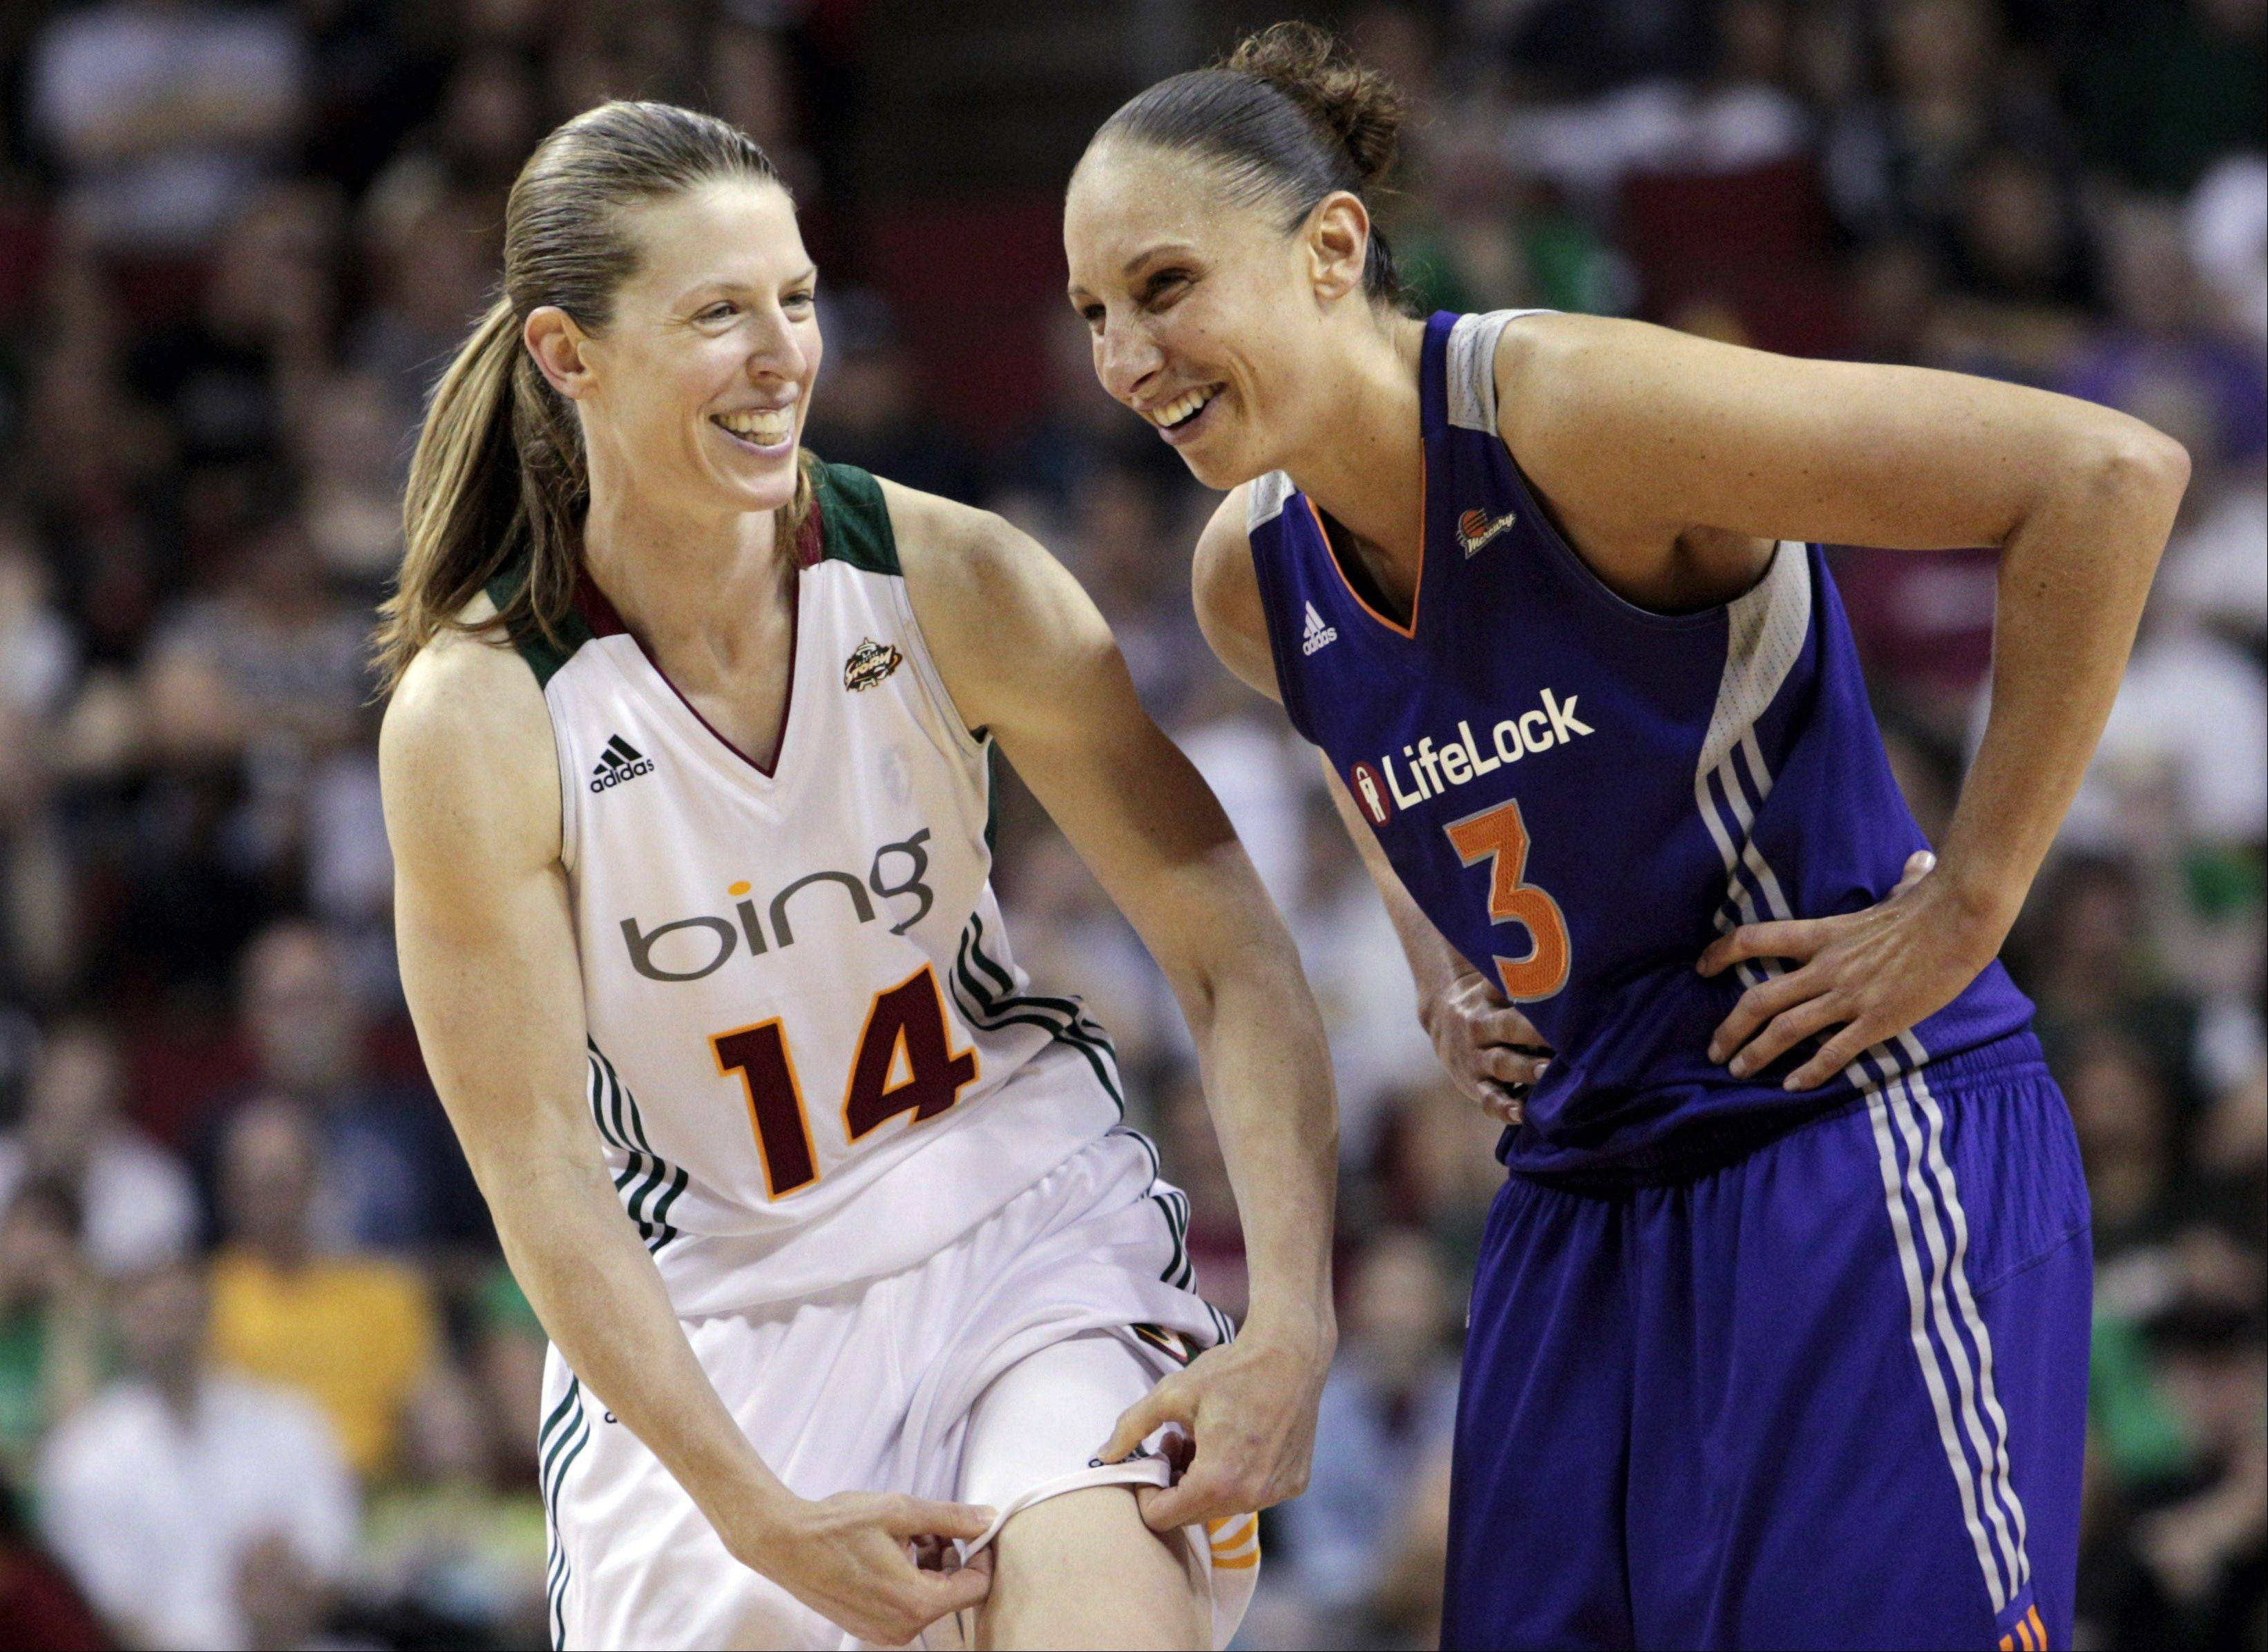 Are women athletes too nice? Seattle Storm's Katie Smith (14) shares a recent laugh with Phoenix Mercury's Diana Taurasi, one of the more competitive stars in the league, during a game last month as a free throw was being shot. Patricia Babcock McGraw wants to know if you think women's teams would draw more attention and grow their sport if more athletes were edgier, nasty or polarizing, like some male athletes today.